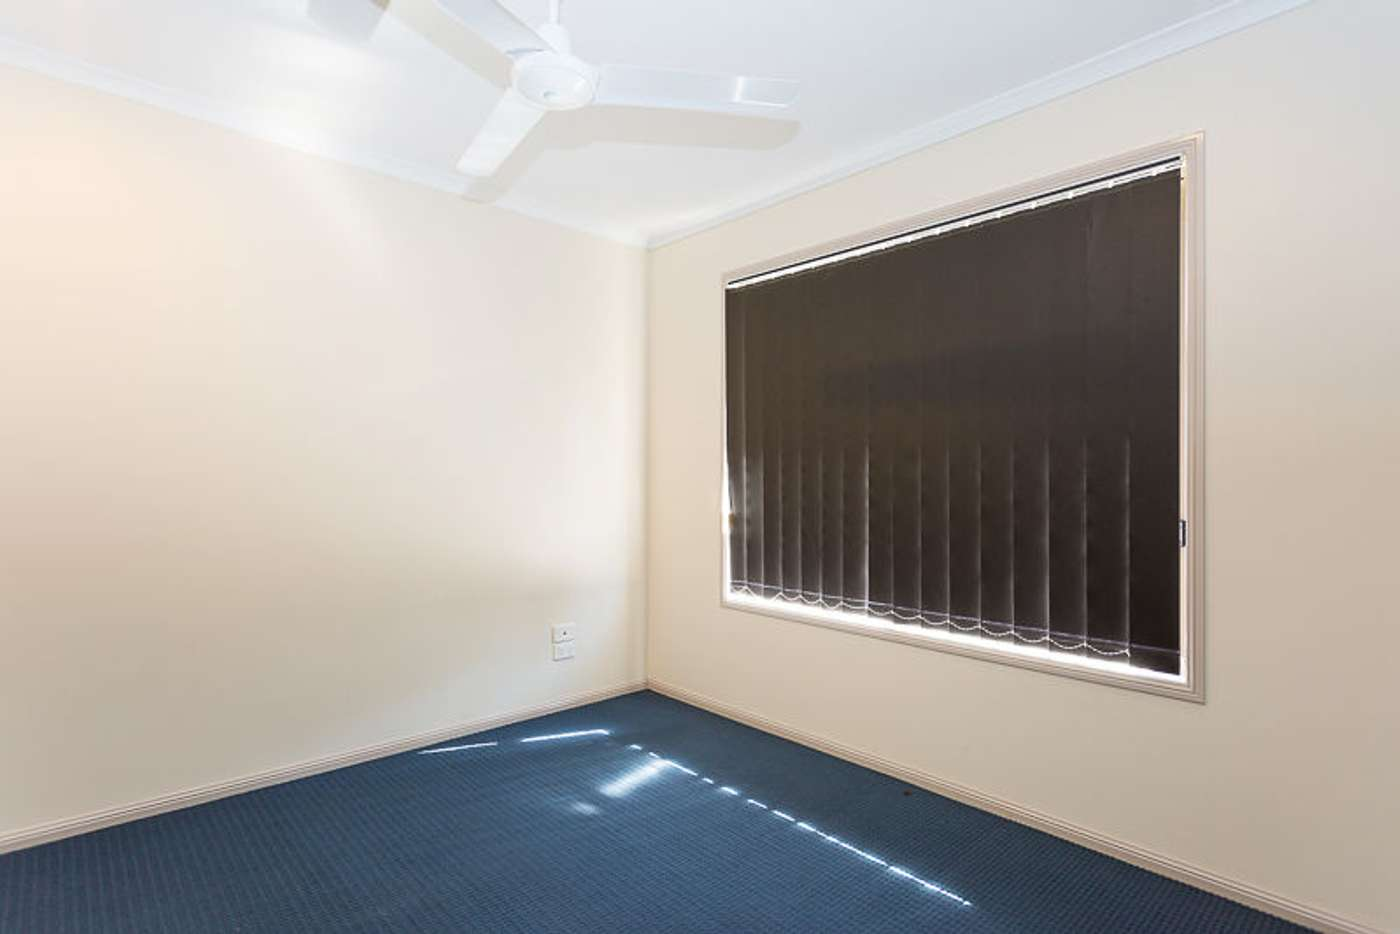 Seventh view of Homely house listing, 19 Waratah Street, Beaconsfield QLD 4740